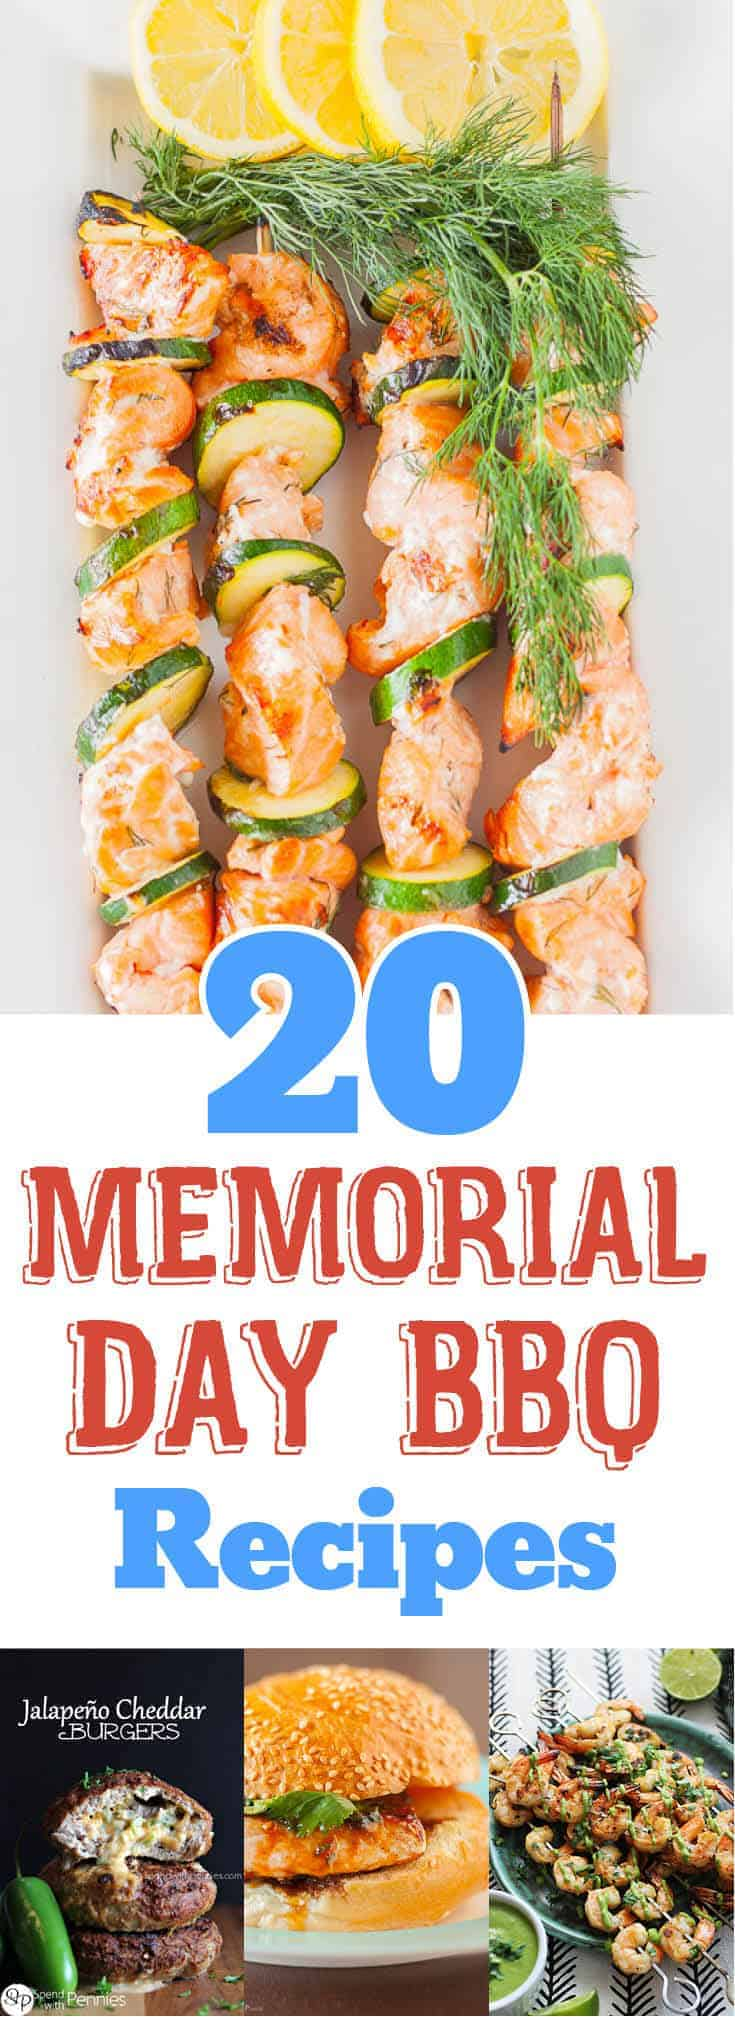 20 Ideas for Your Memorial Day Barbecue - Recipe Roundup by www.platingpixels.com